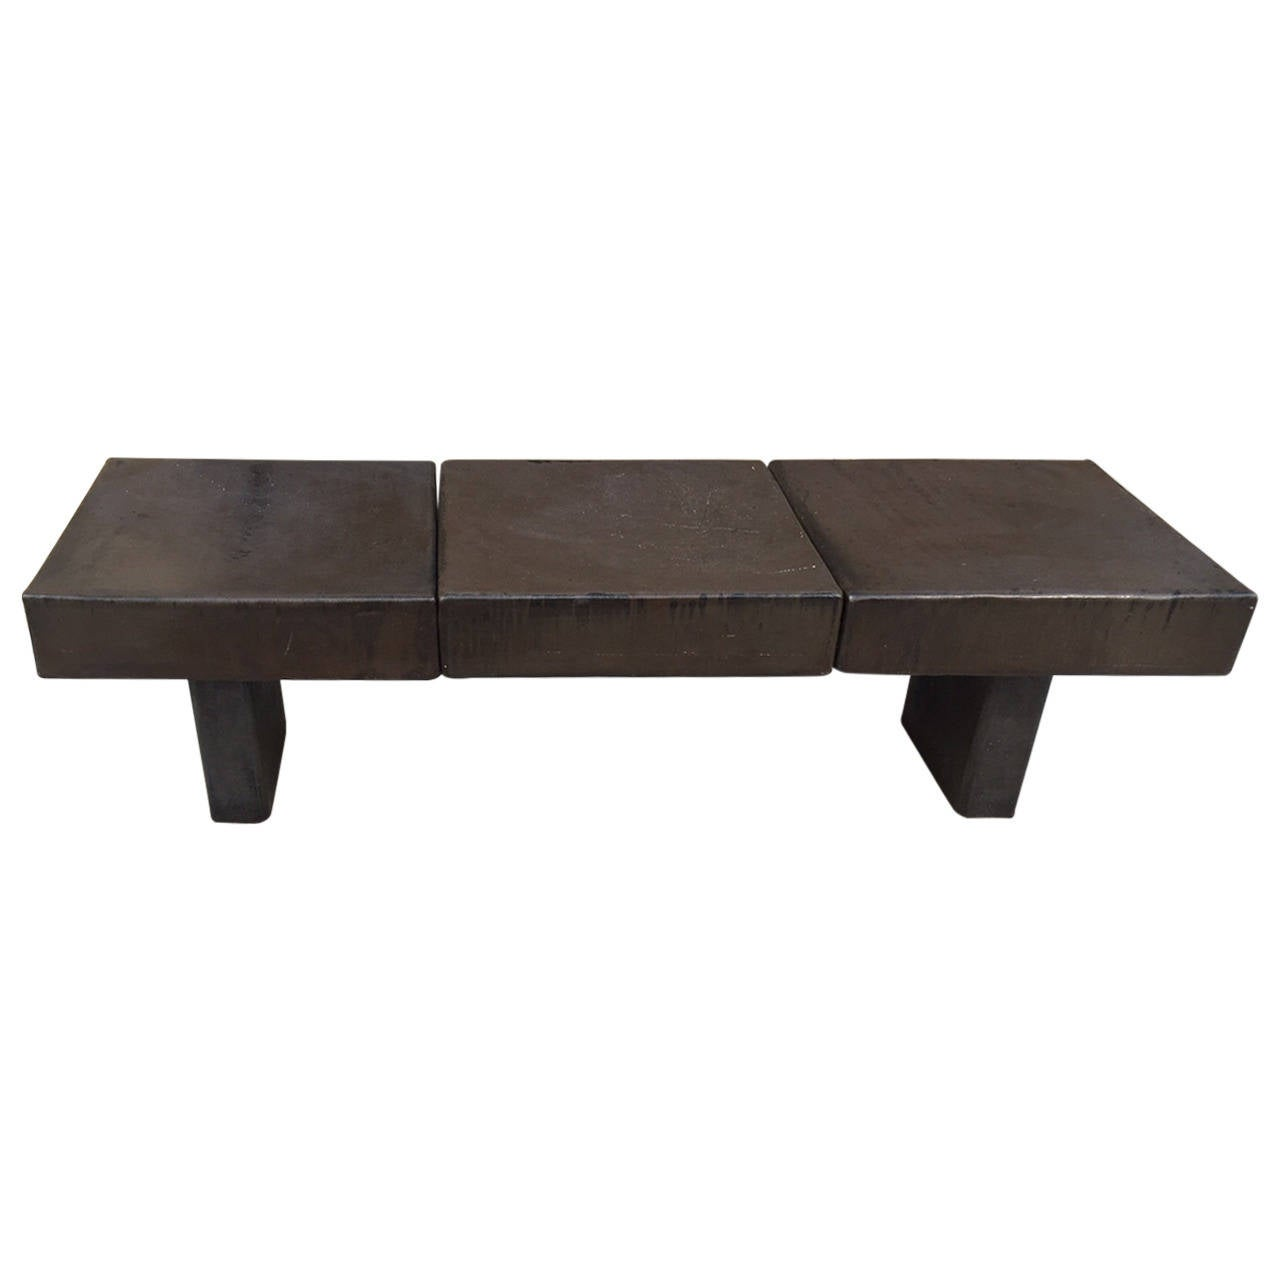 Outdoor Cement Bench 28 Images Indoor And Outdoor Cement Glazed Ceramic Bench For Sale At